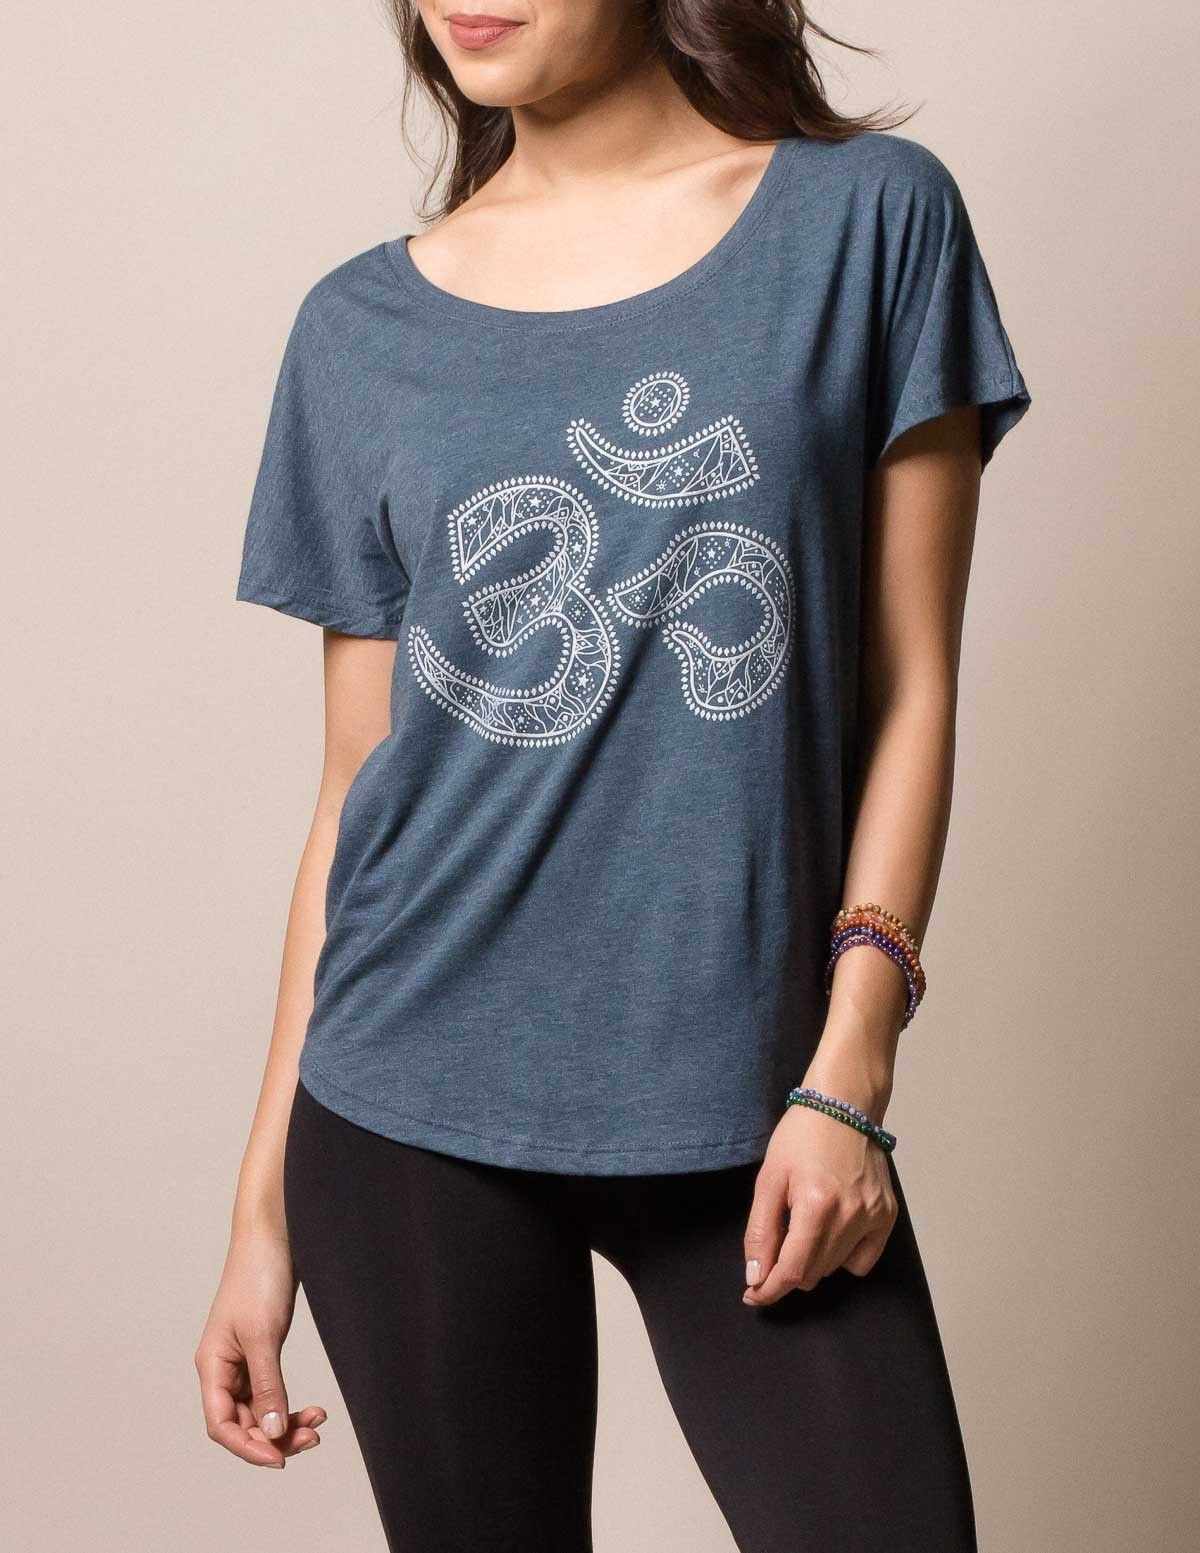 c8b94c4001d85 Dolman Heavenly Om Tee | style | Fair trade jewelry, Tees, Tibetan art